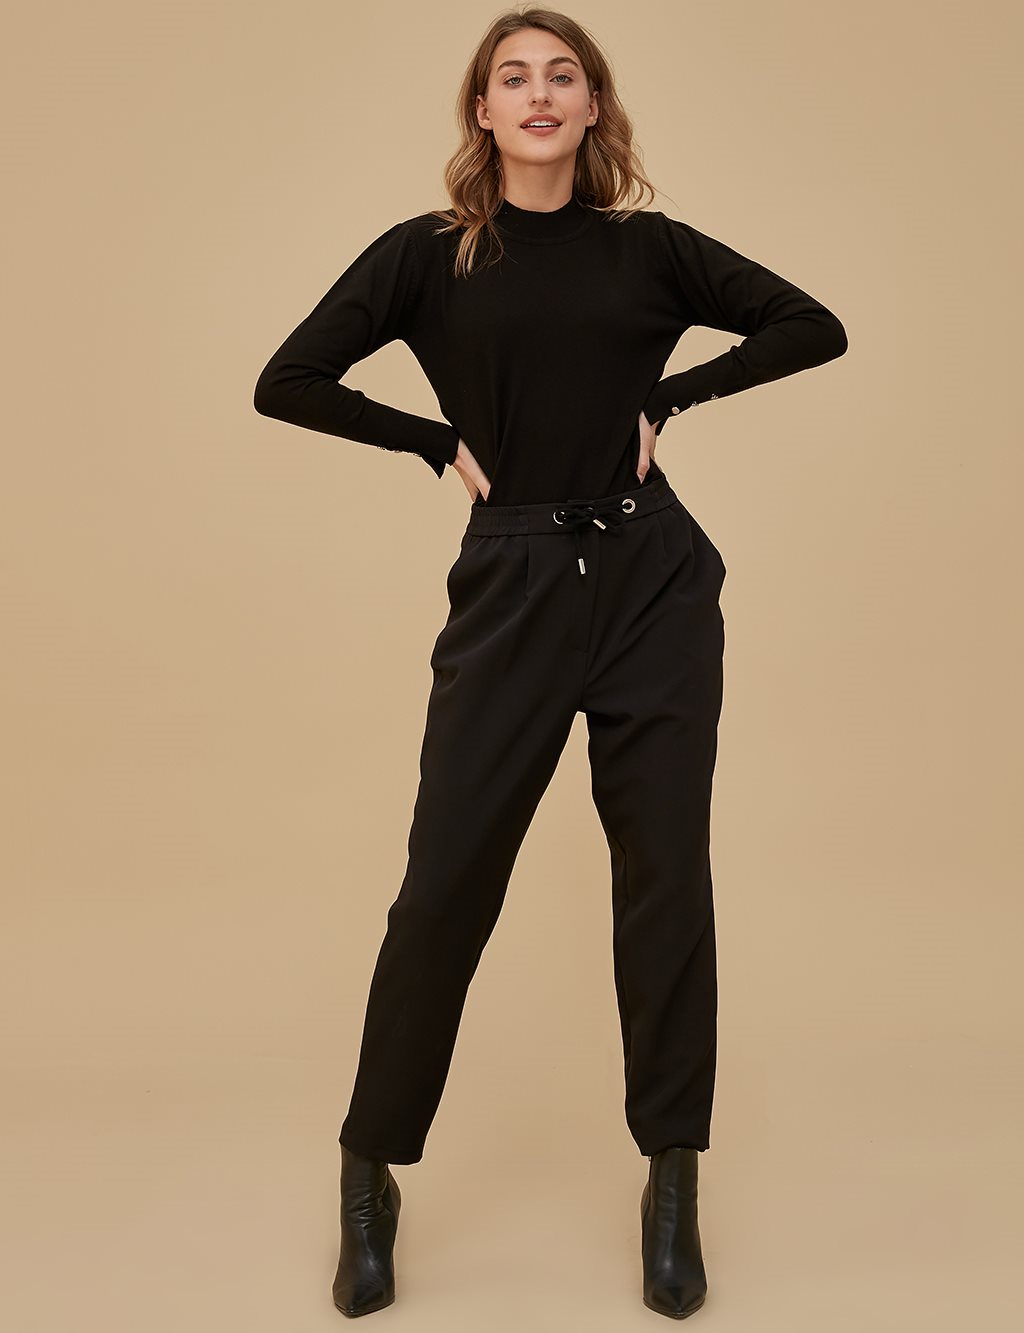 Carrot Pants B20 19170 Black